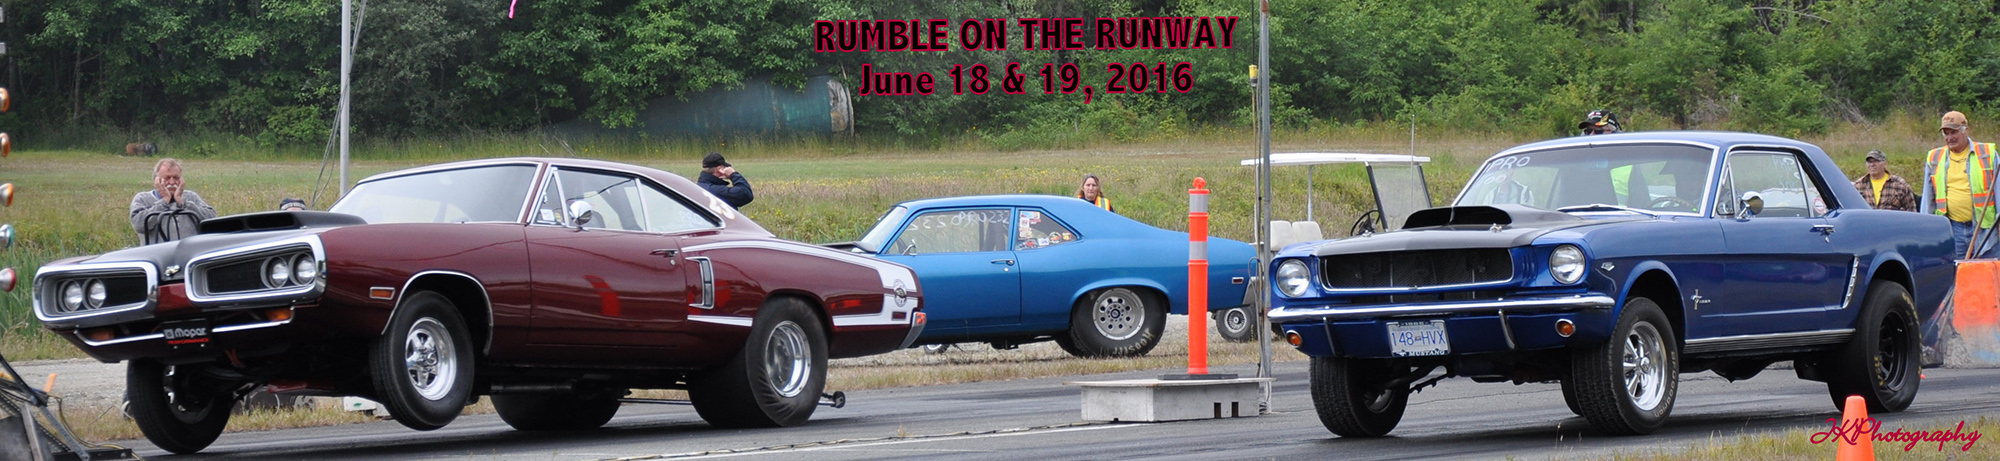 Rumble on the Runway June 18 & 19, 2016 1141